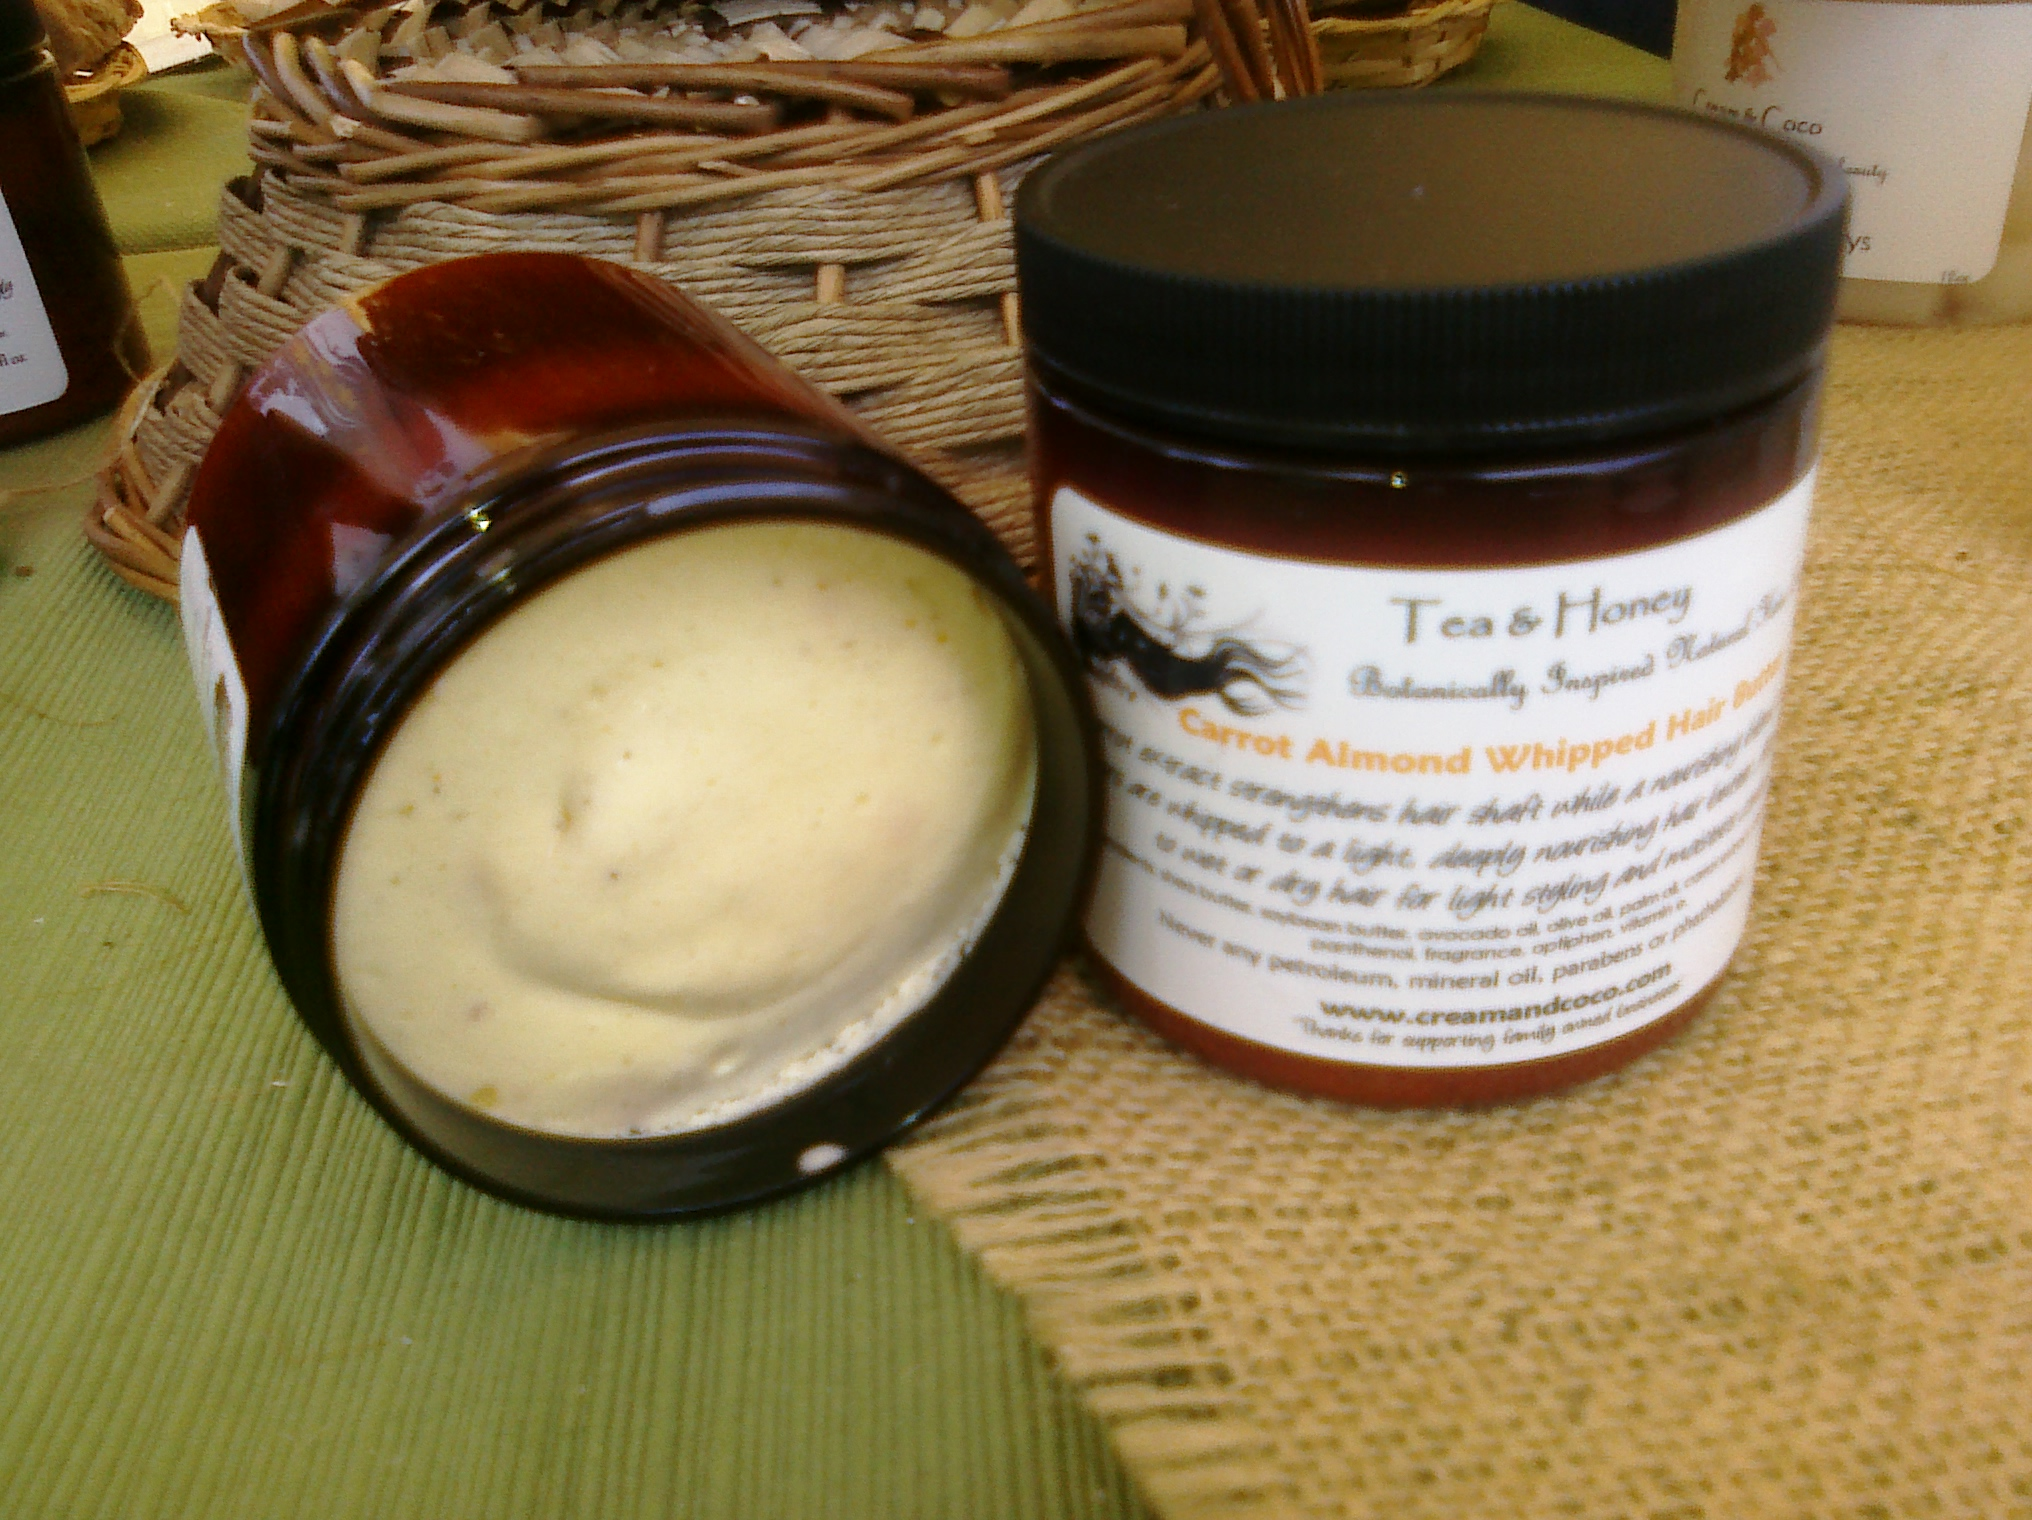 Carrot Almond Whipped Shea Frosting